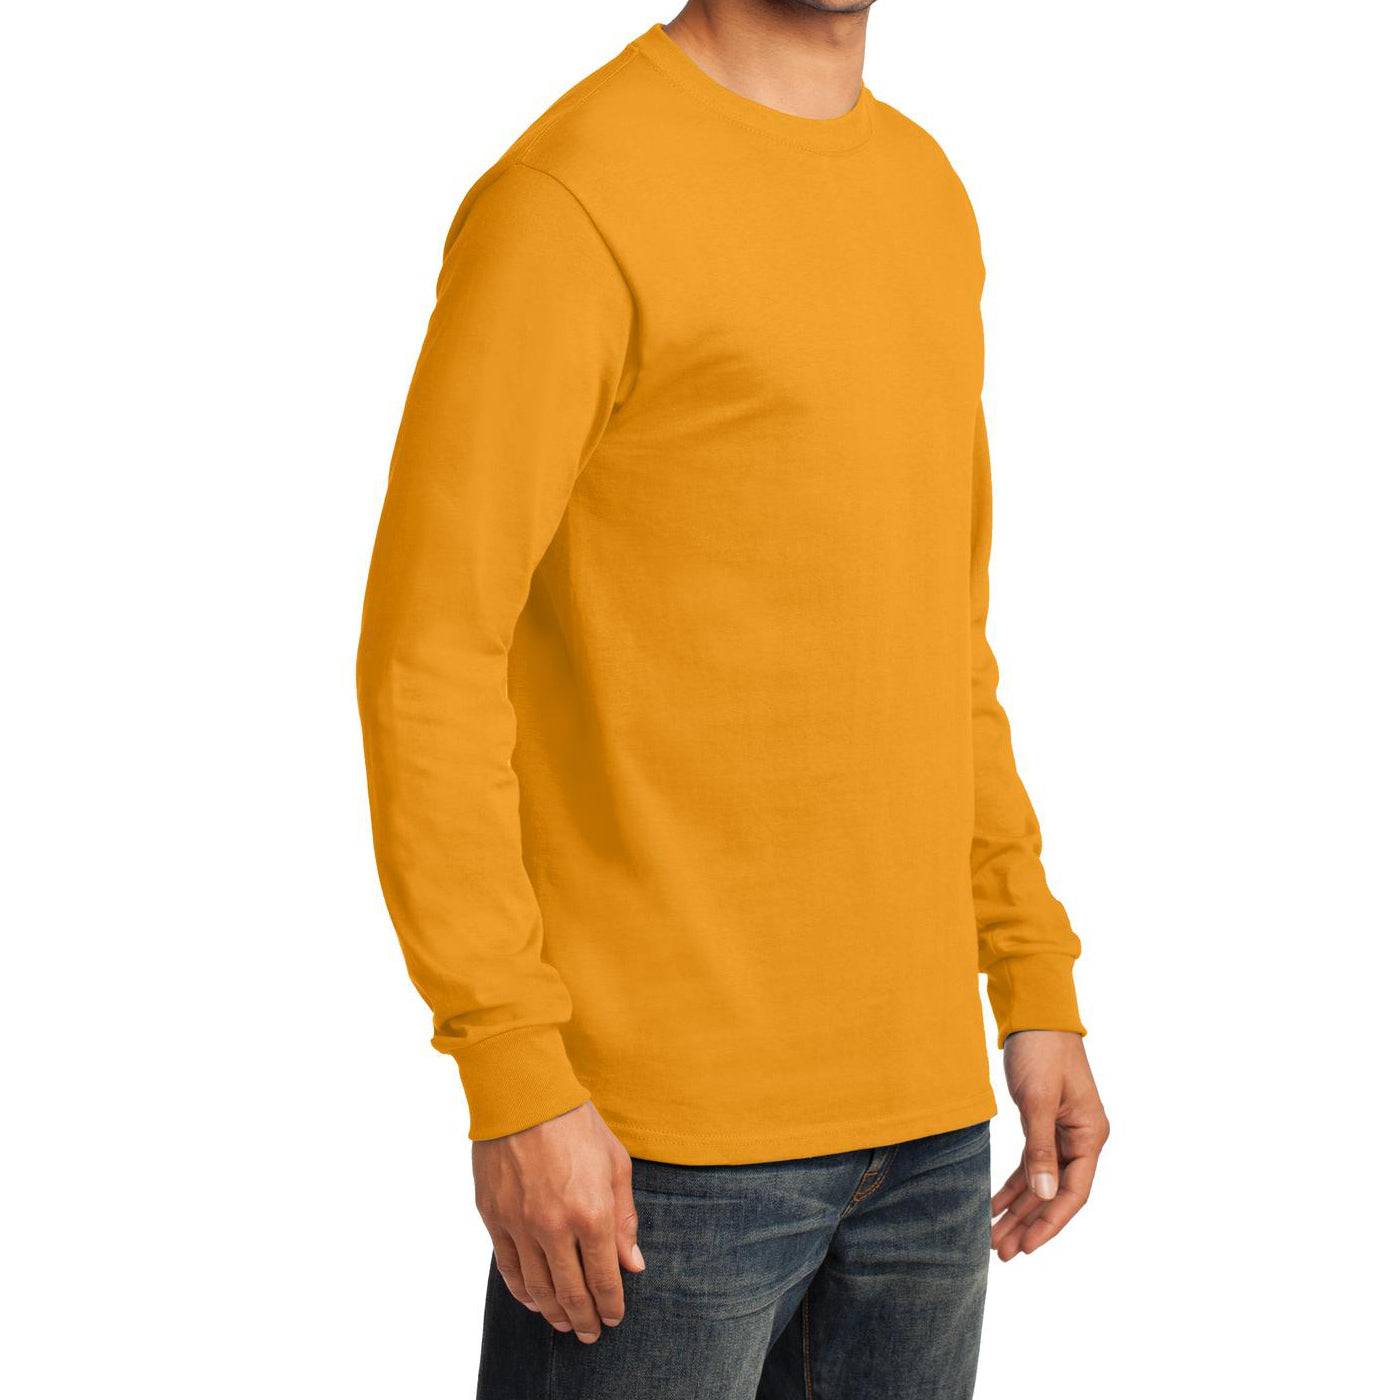 Men's Long Sleeve Essential Tee - Gold - Side